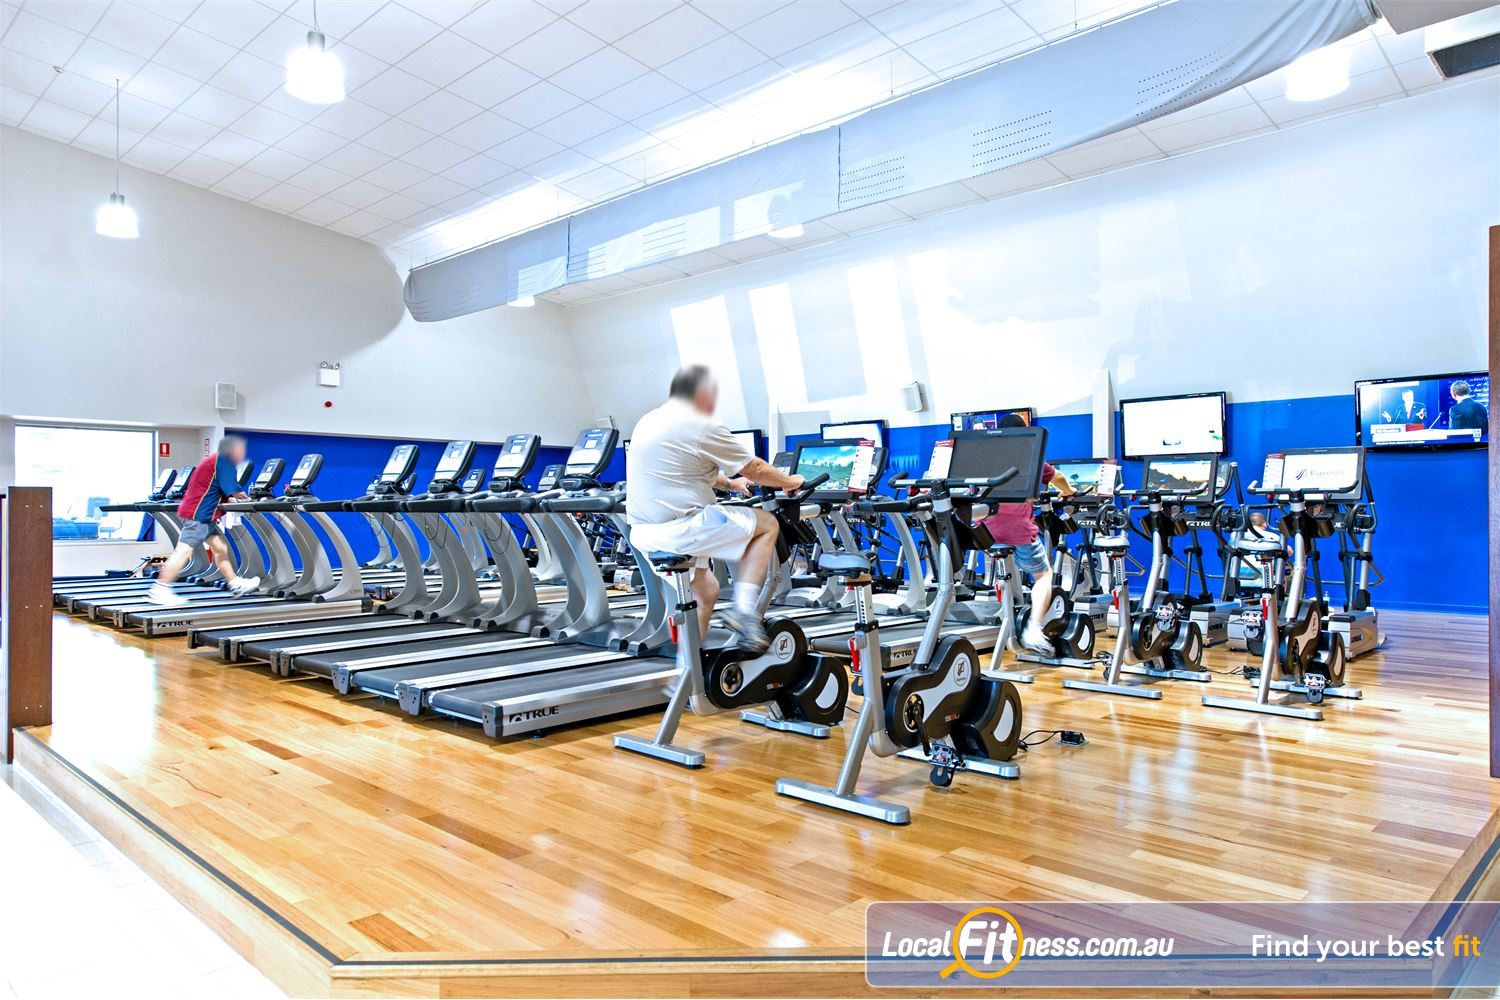 Genesis Fitness Clubs Near North Parramatta Tune into your favourite shows in our cardio theatre.